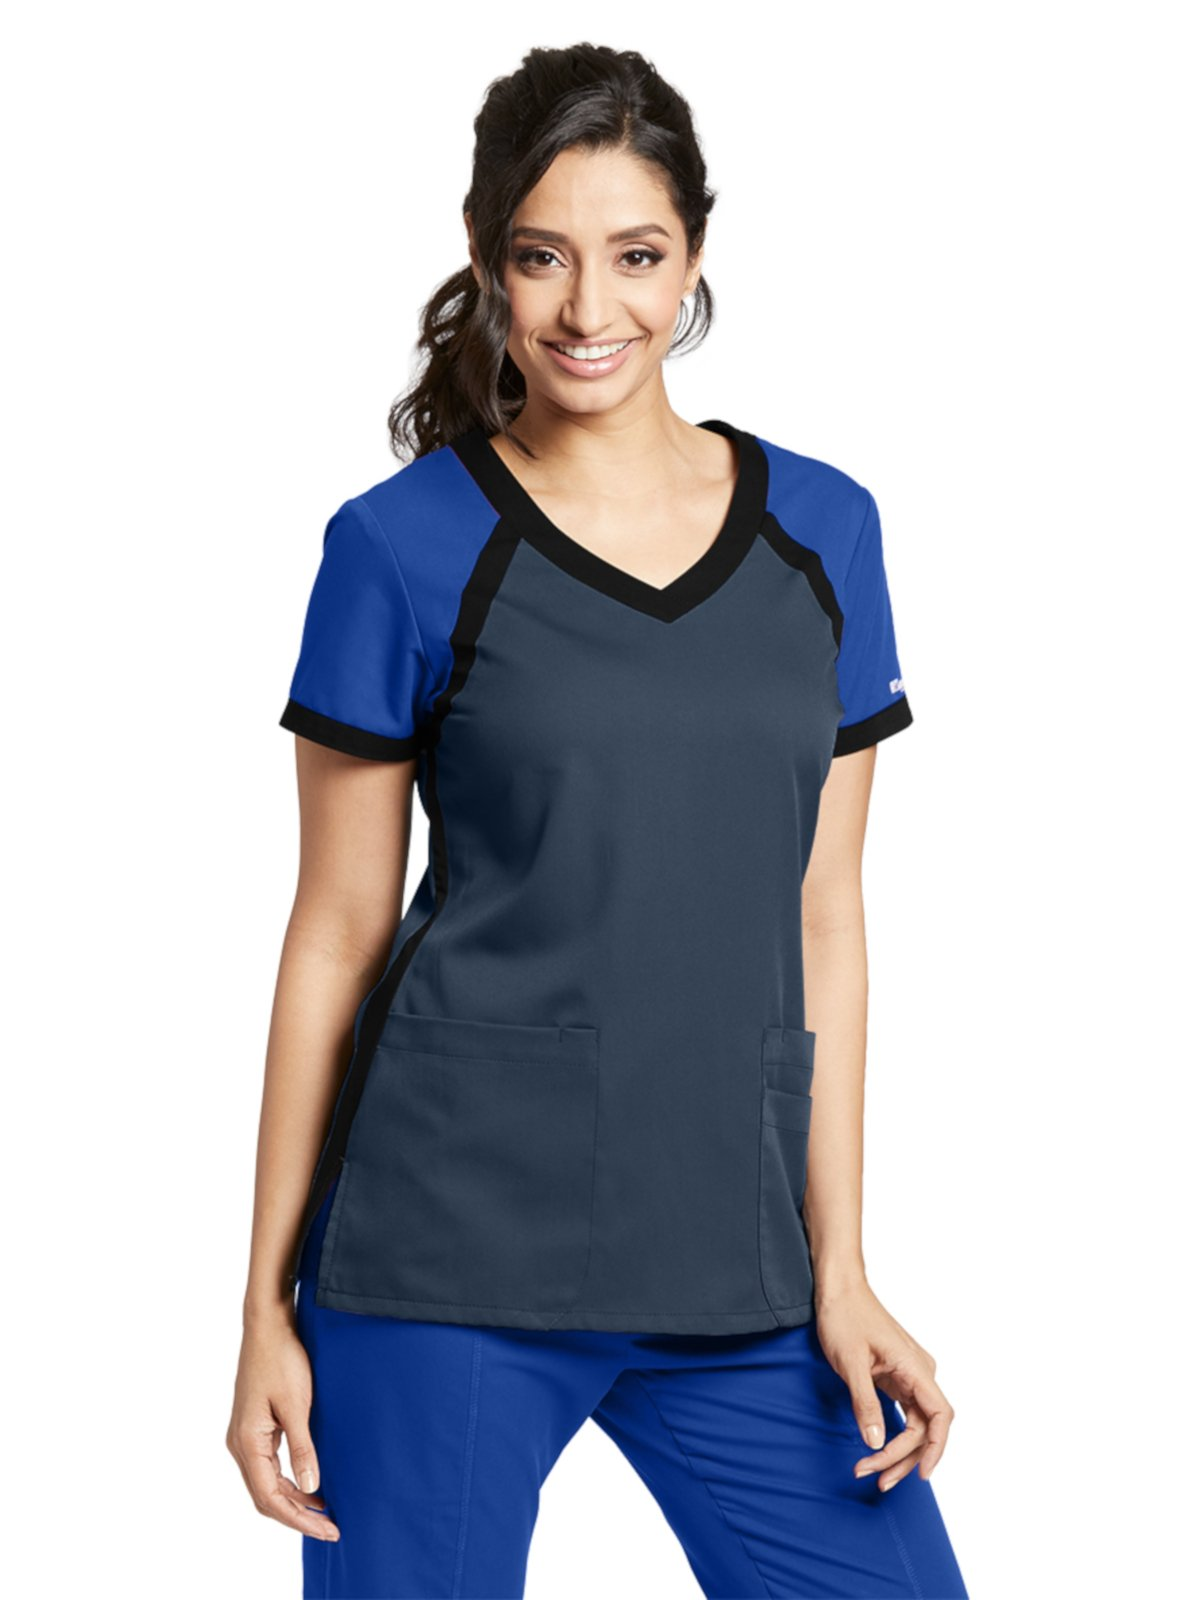 Grey's Anatomy Active 41435 Color Block V-Neck Top Steel/Galaxy/Black M